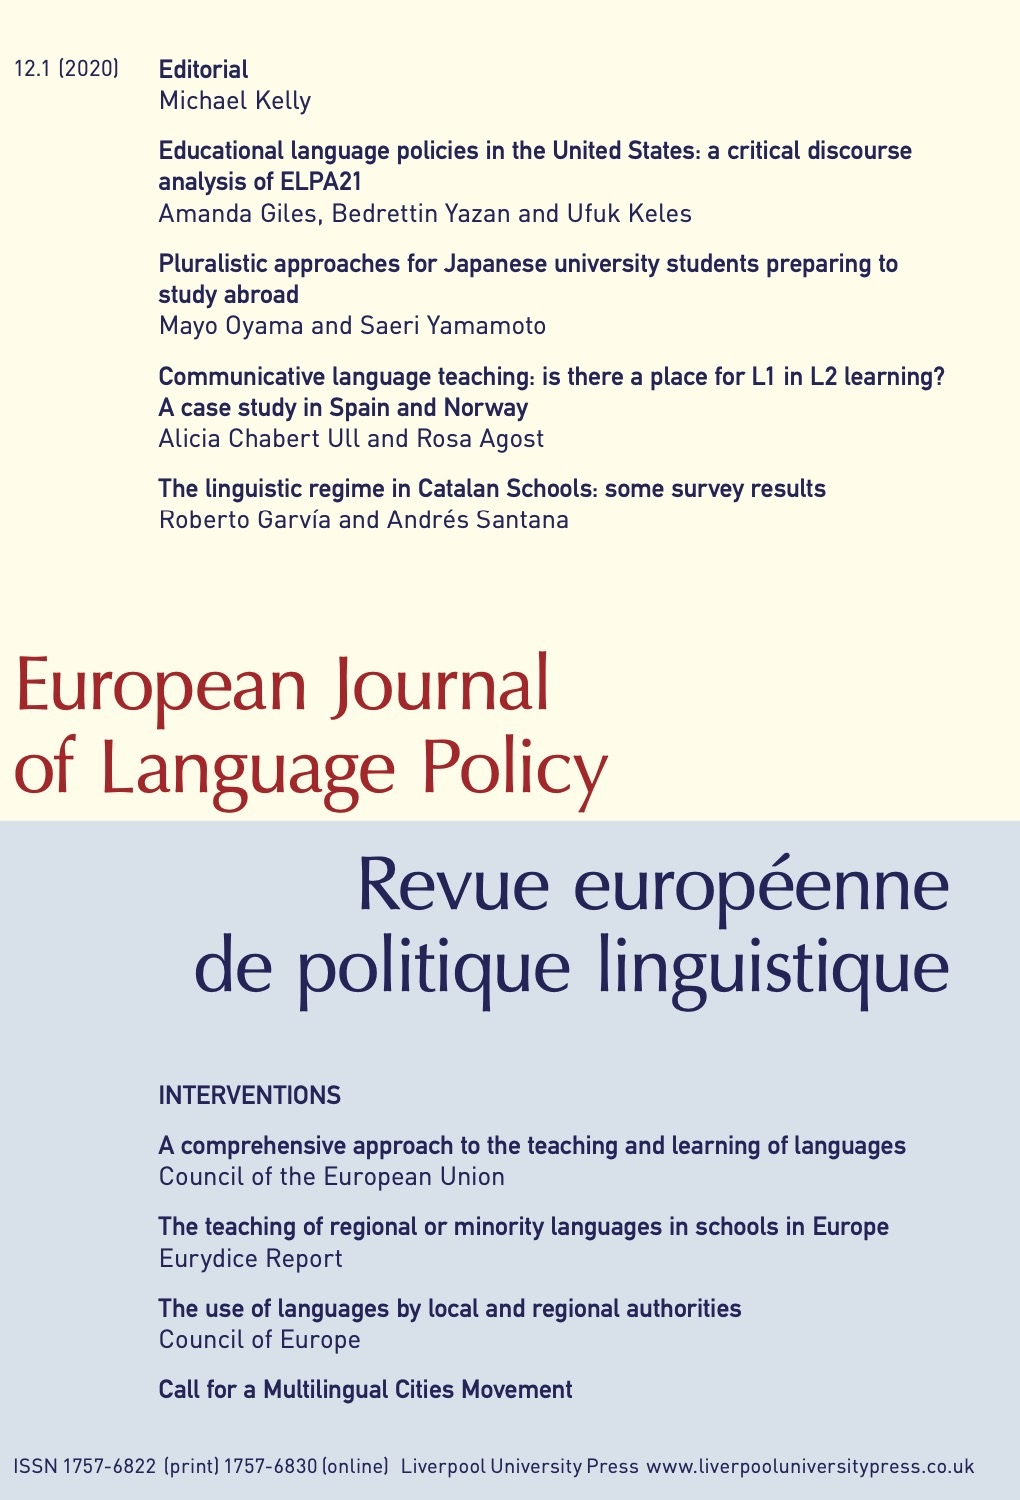 European Journal of Language Policy